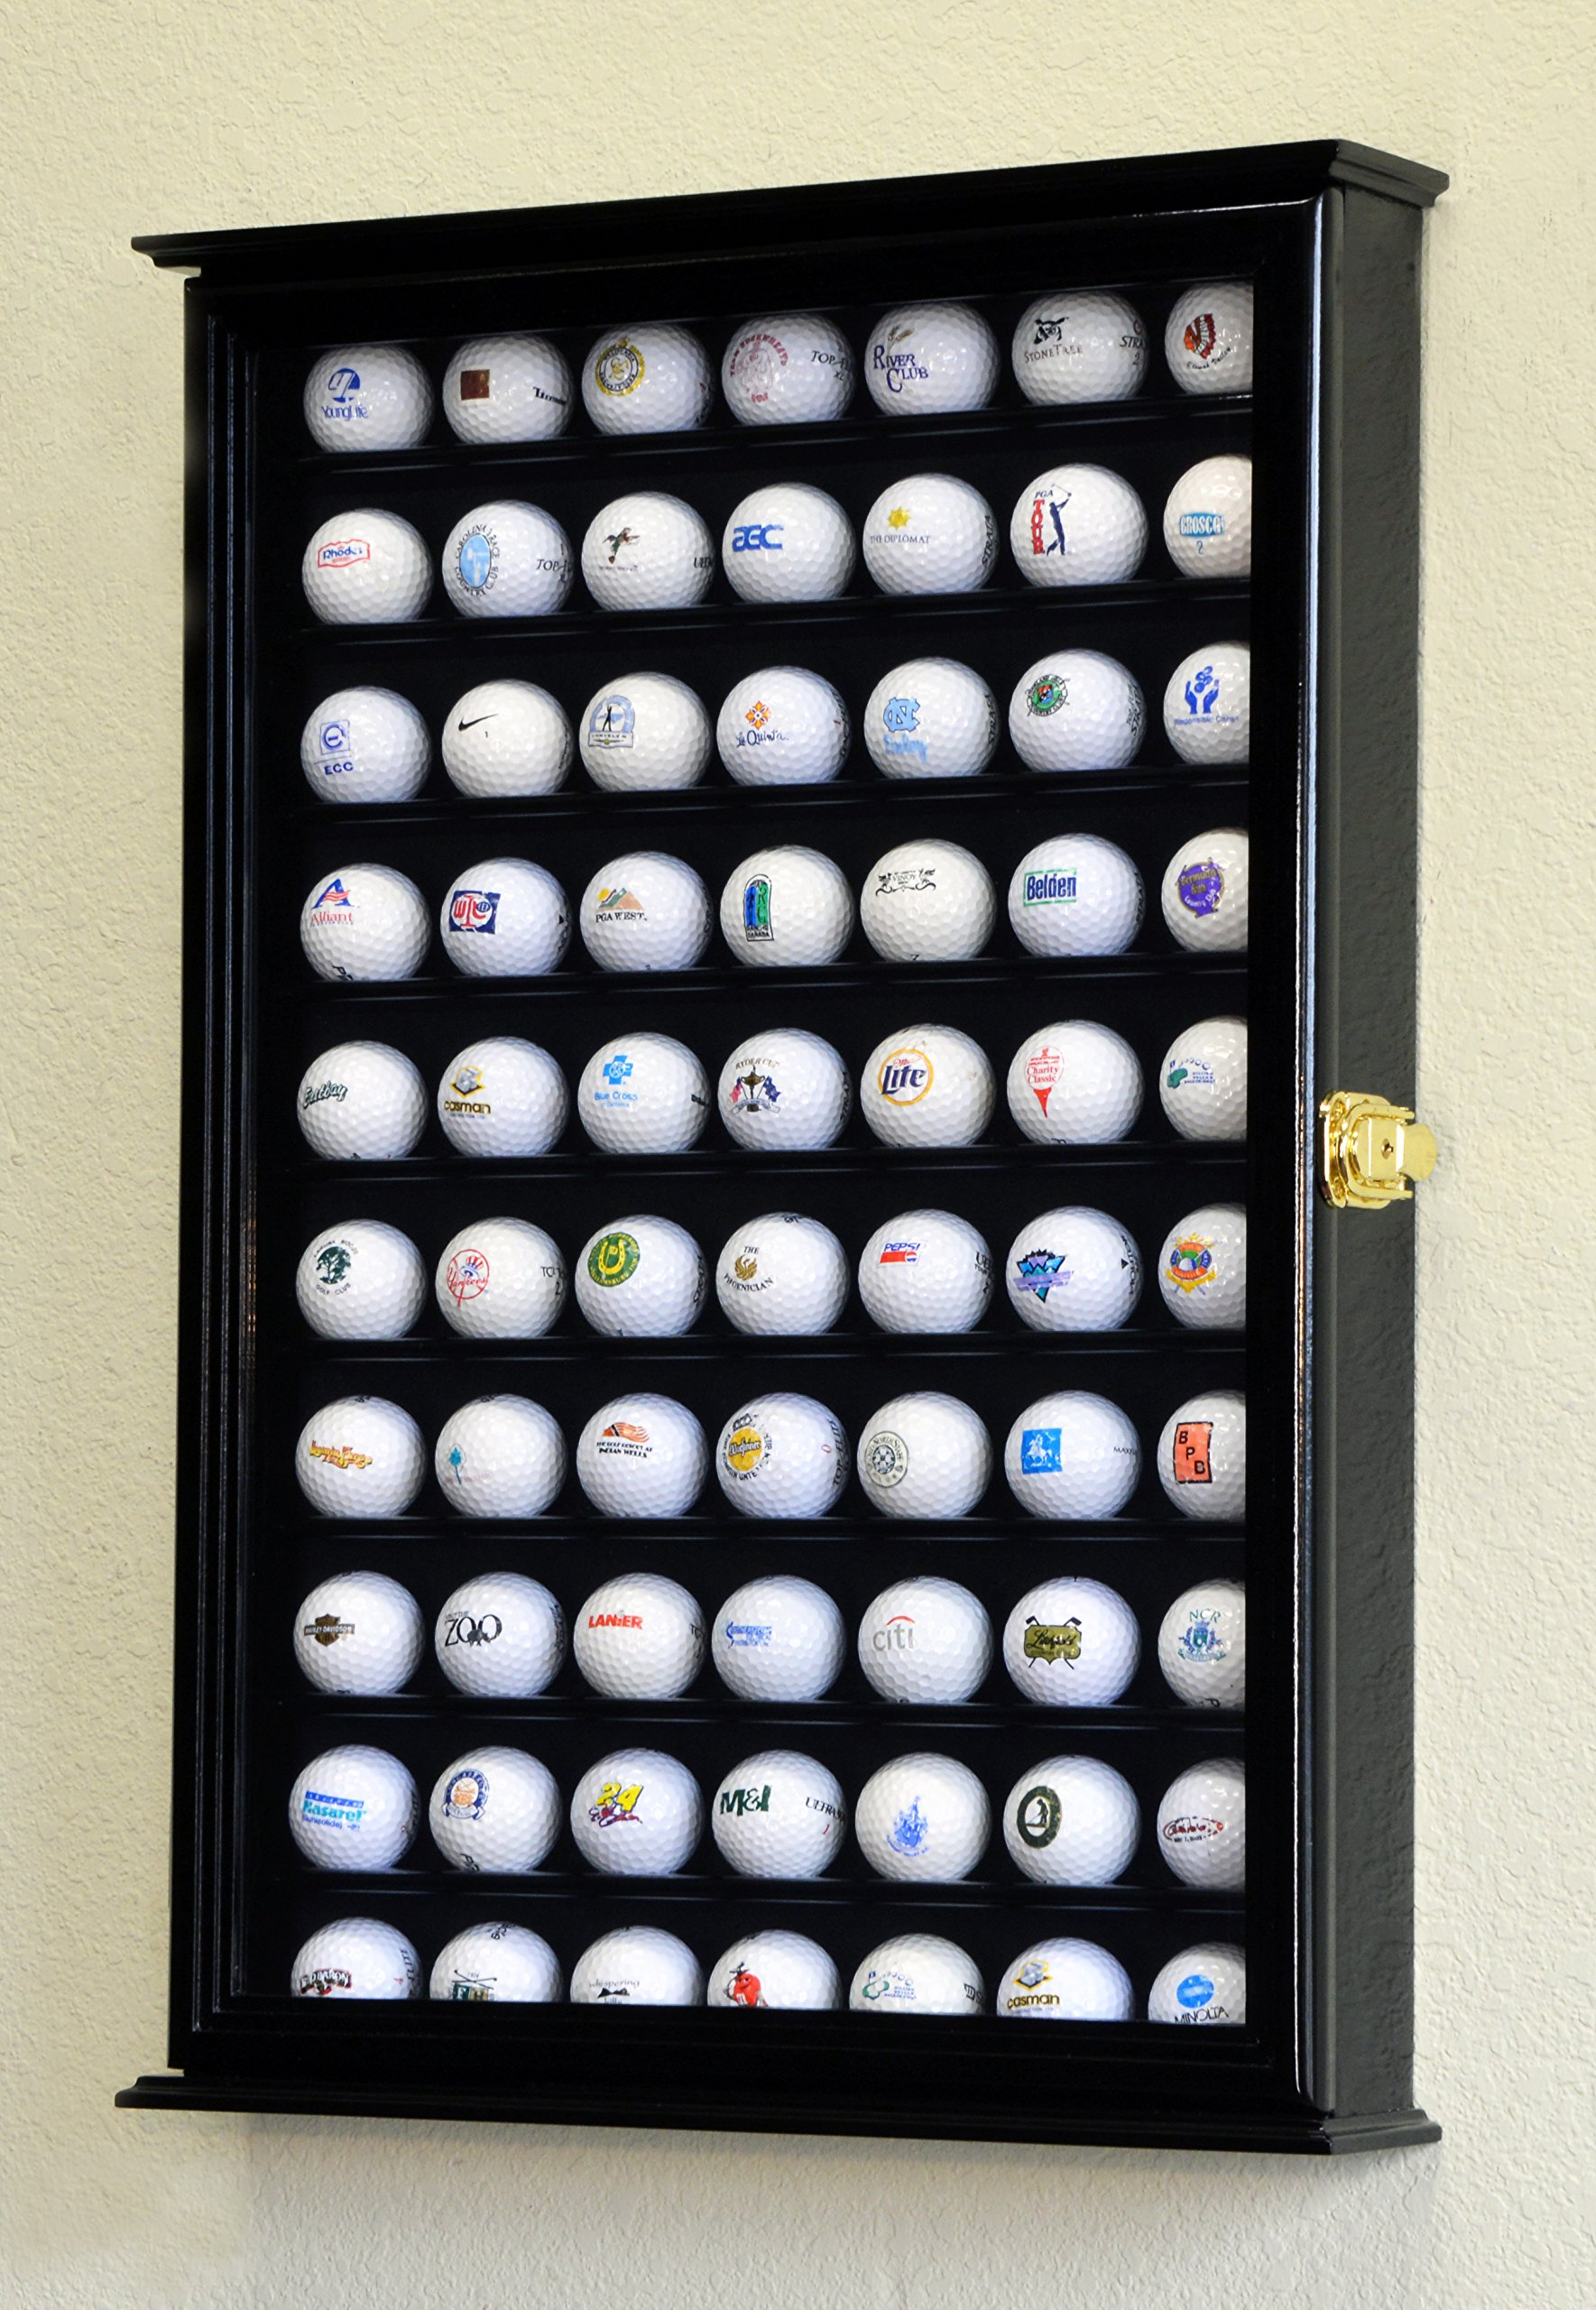 70 Golf Ball Display Case Cabinet Holder Wall Rack w/ UV Protection -Black by sfDisplay (Image #1)